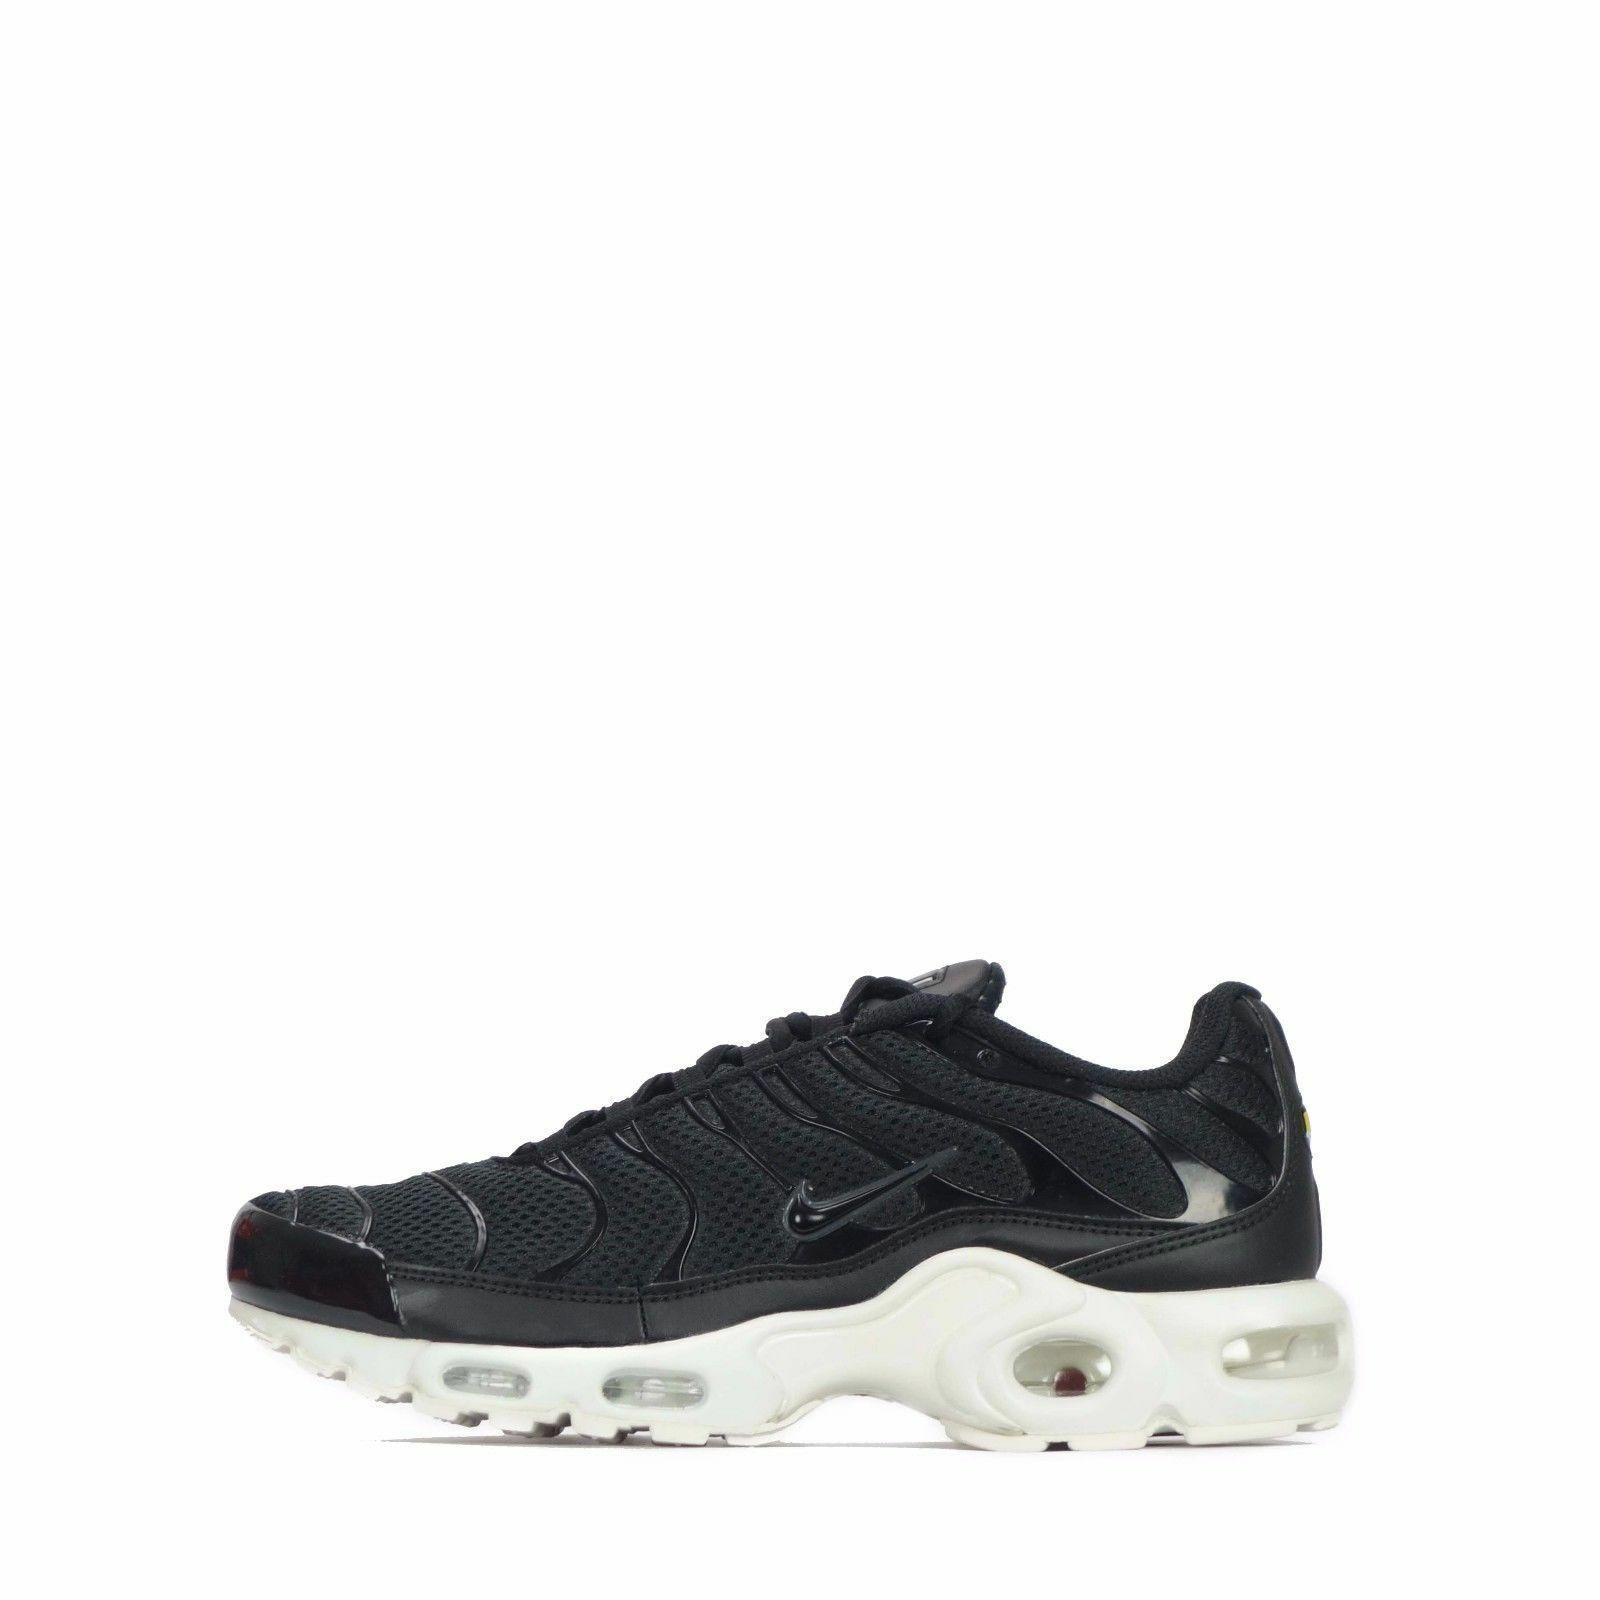 Nike Air Max Plus BR TN Tuned Running shoes Black Summit White SZ 12 898014-001